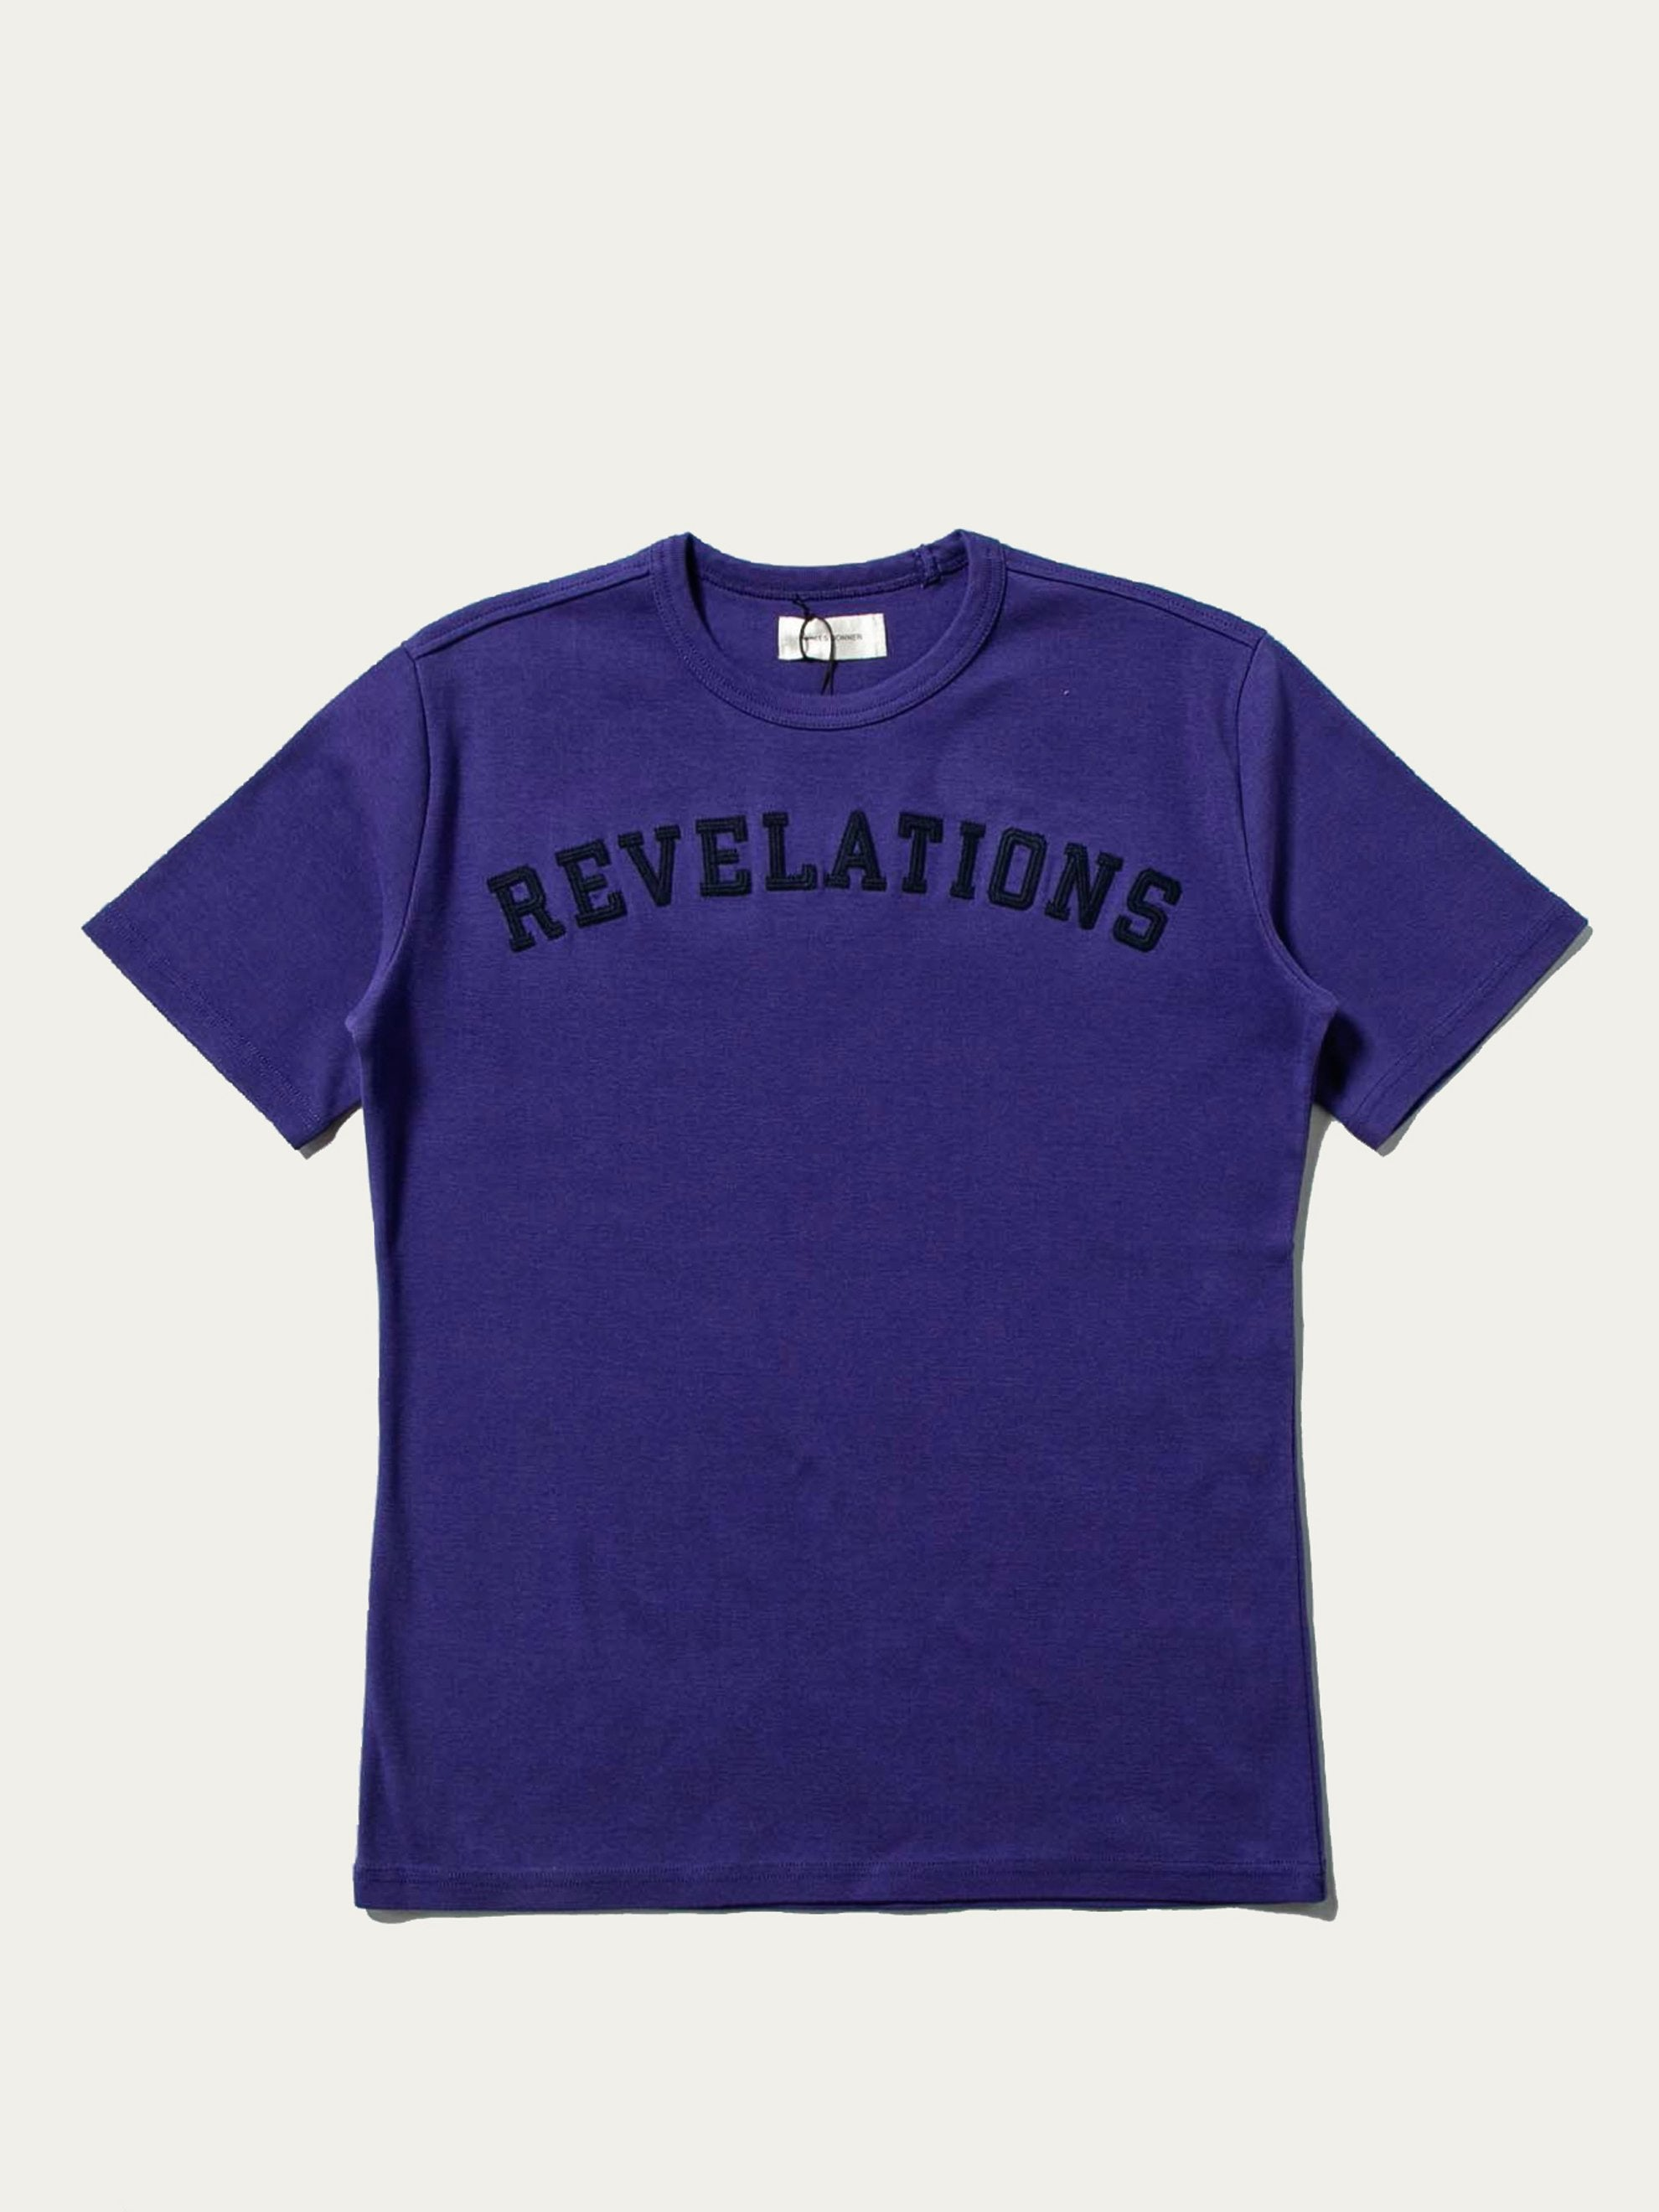 Royal Purple Invocation Revelation T-Shirt 1